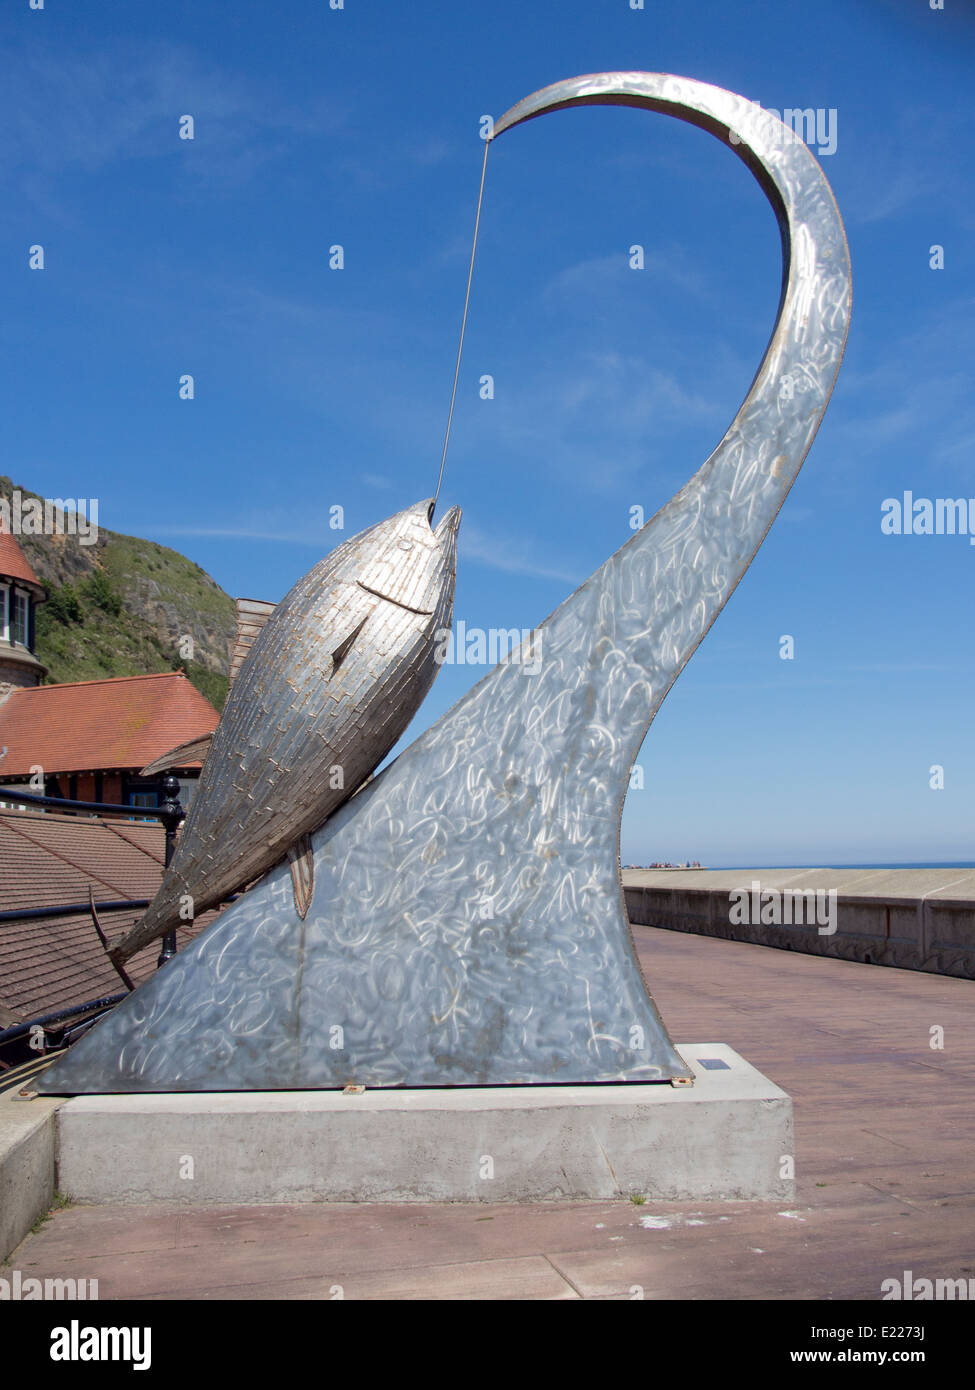 The Tunney Sculpture by Ray Lonsdale Scarborough Harbour 2013 - Stock Image